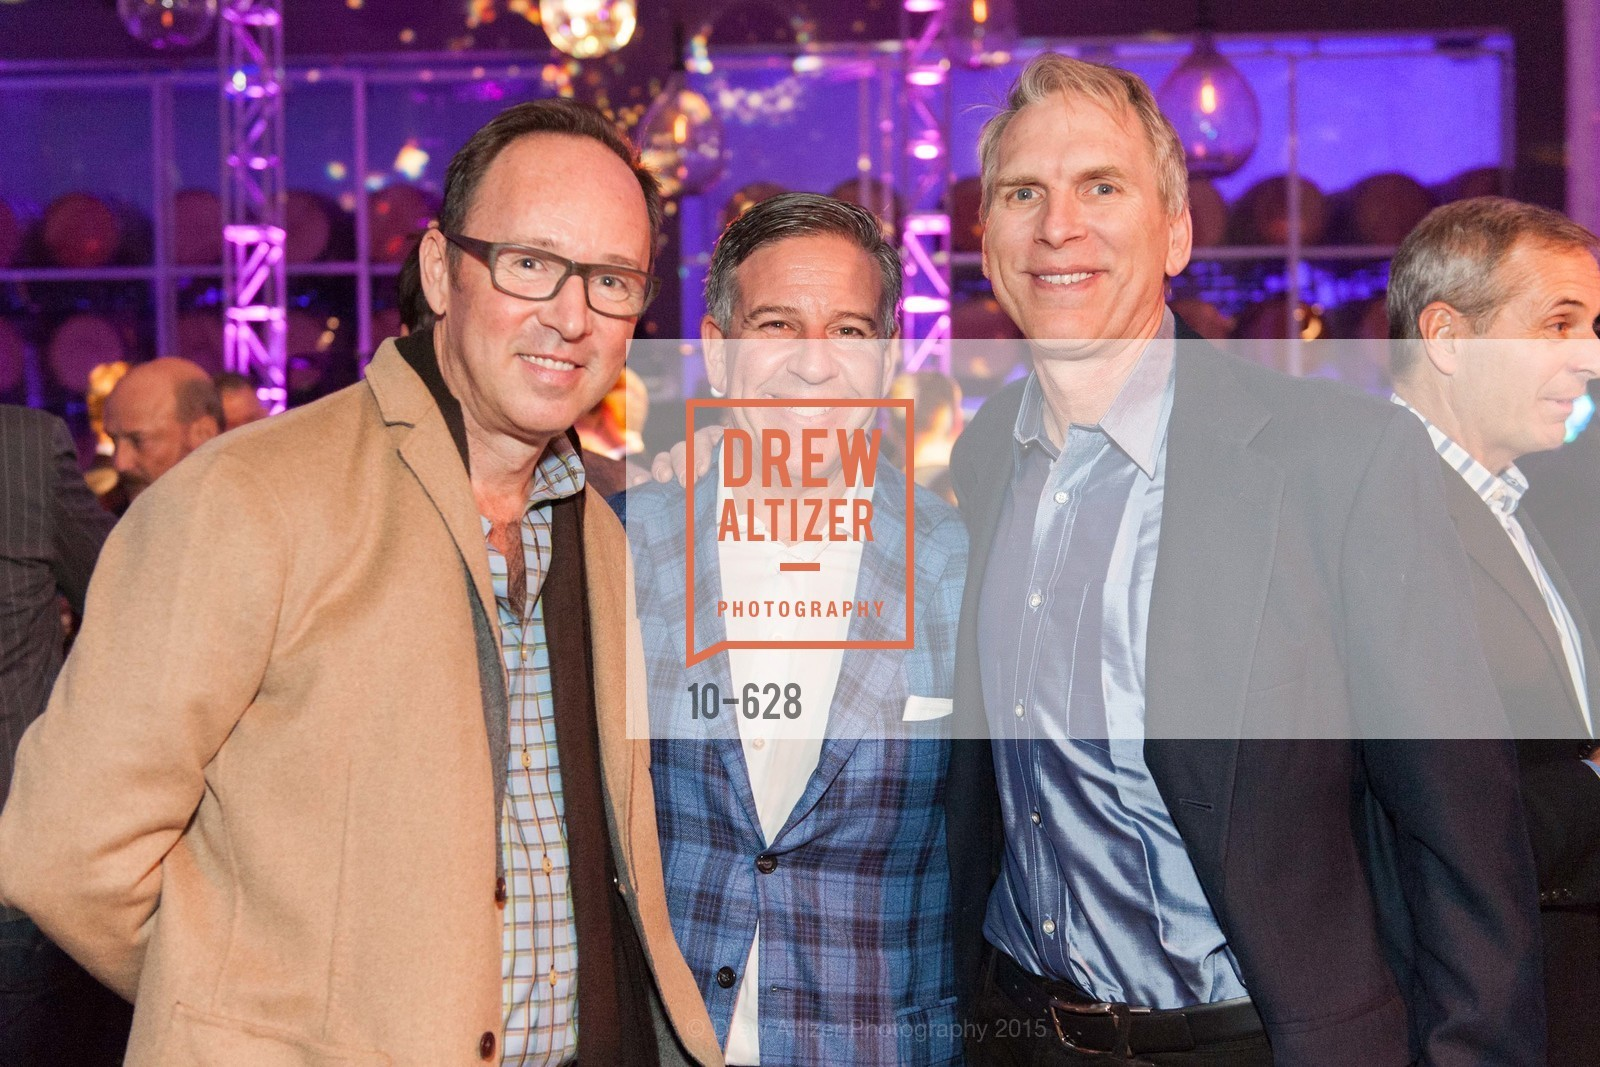 Christopher Hoover, Gregg Lynn, Gregg Lynn & Glenn Risso's Holiday Party, Blunome Winery, December 5th, 2015,Drew Altizer, Drew Altizer Photography, full-service agency, private events, San Francisco photographer, photographer california